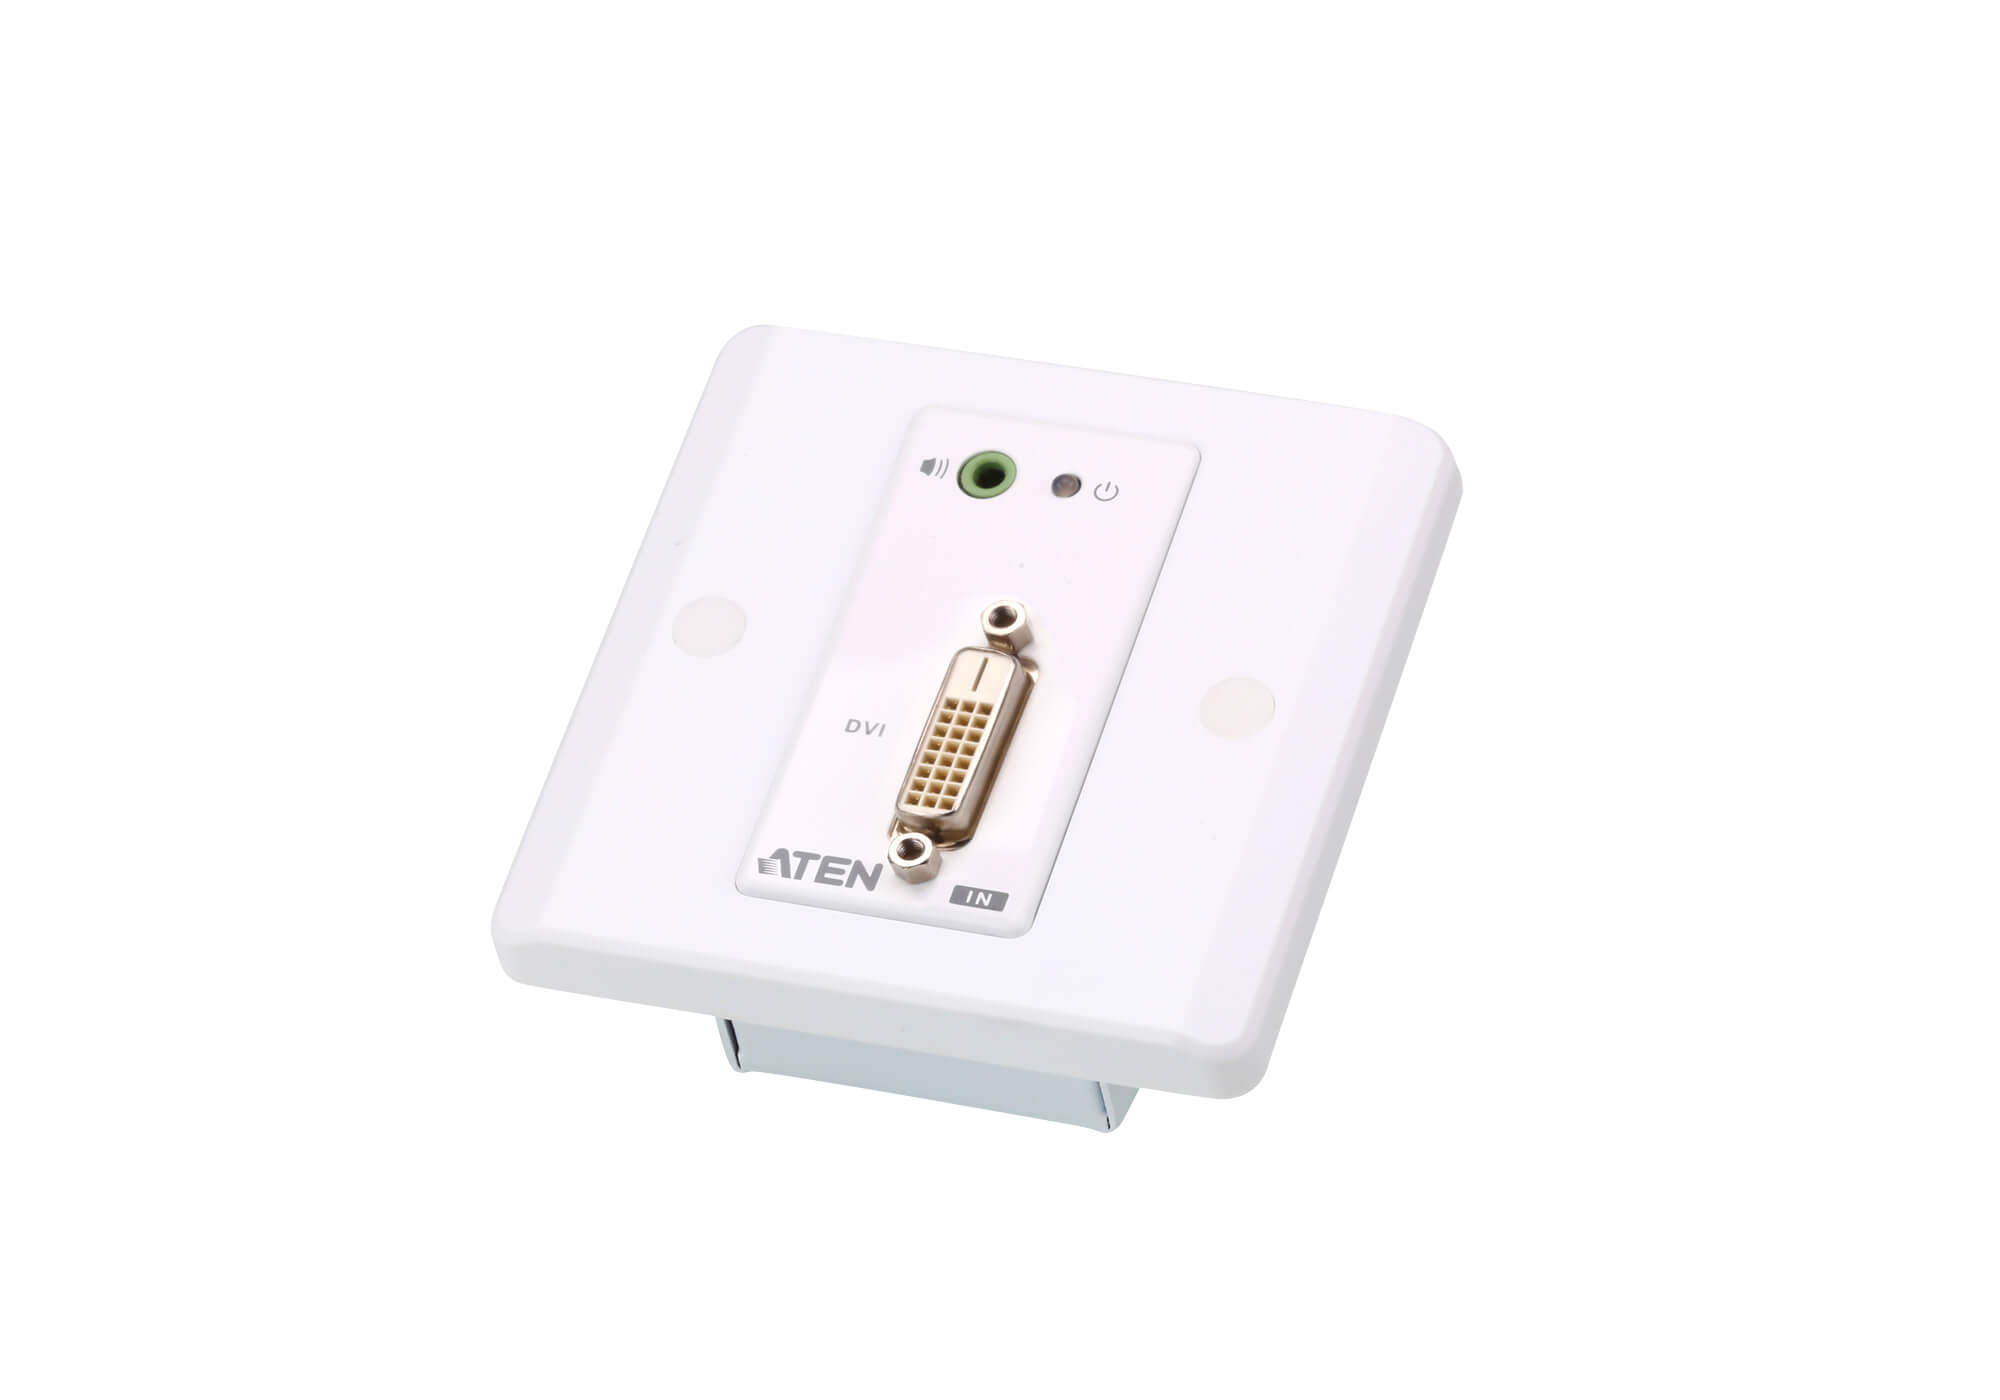 Extensor de DVI/audio Cat 5 con placa de pared MK (1920 x 1200 a 40 m)-5